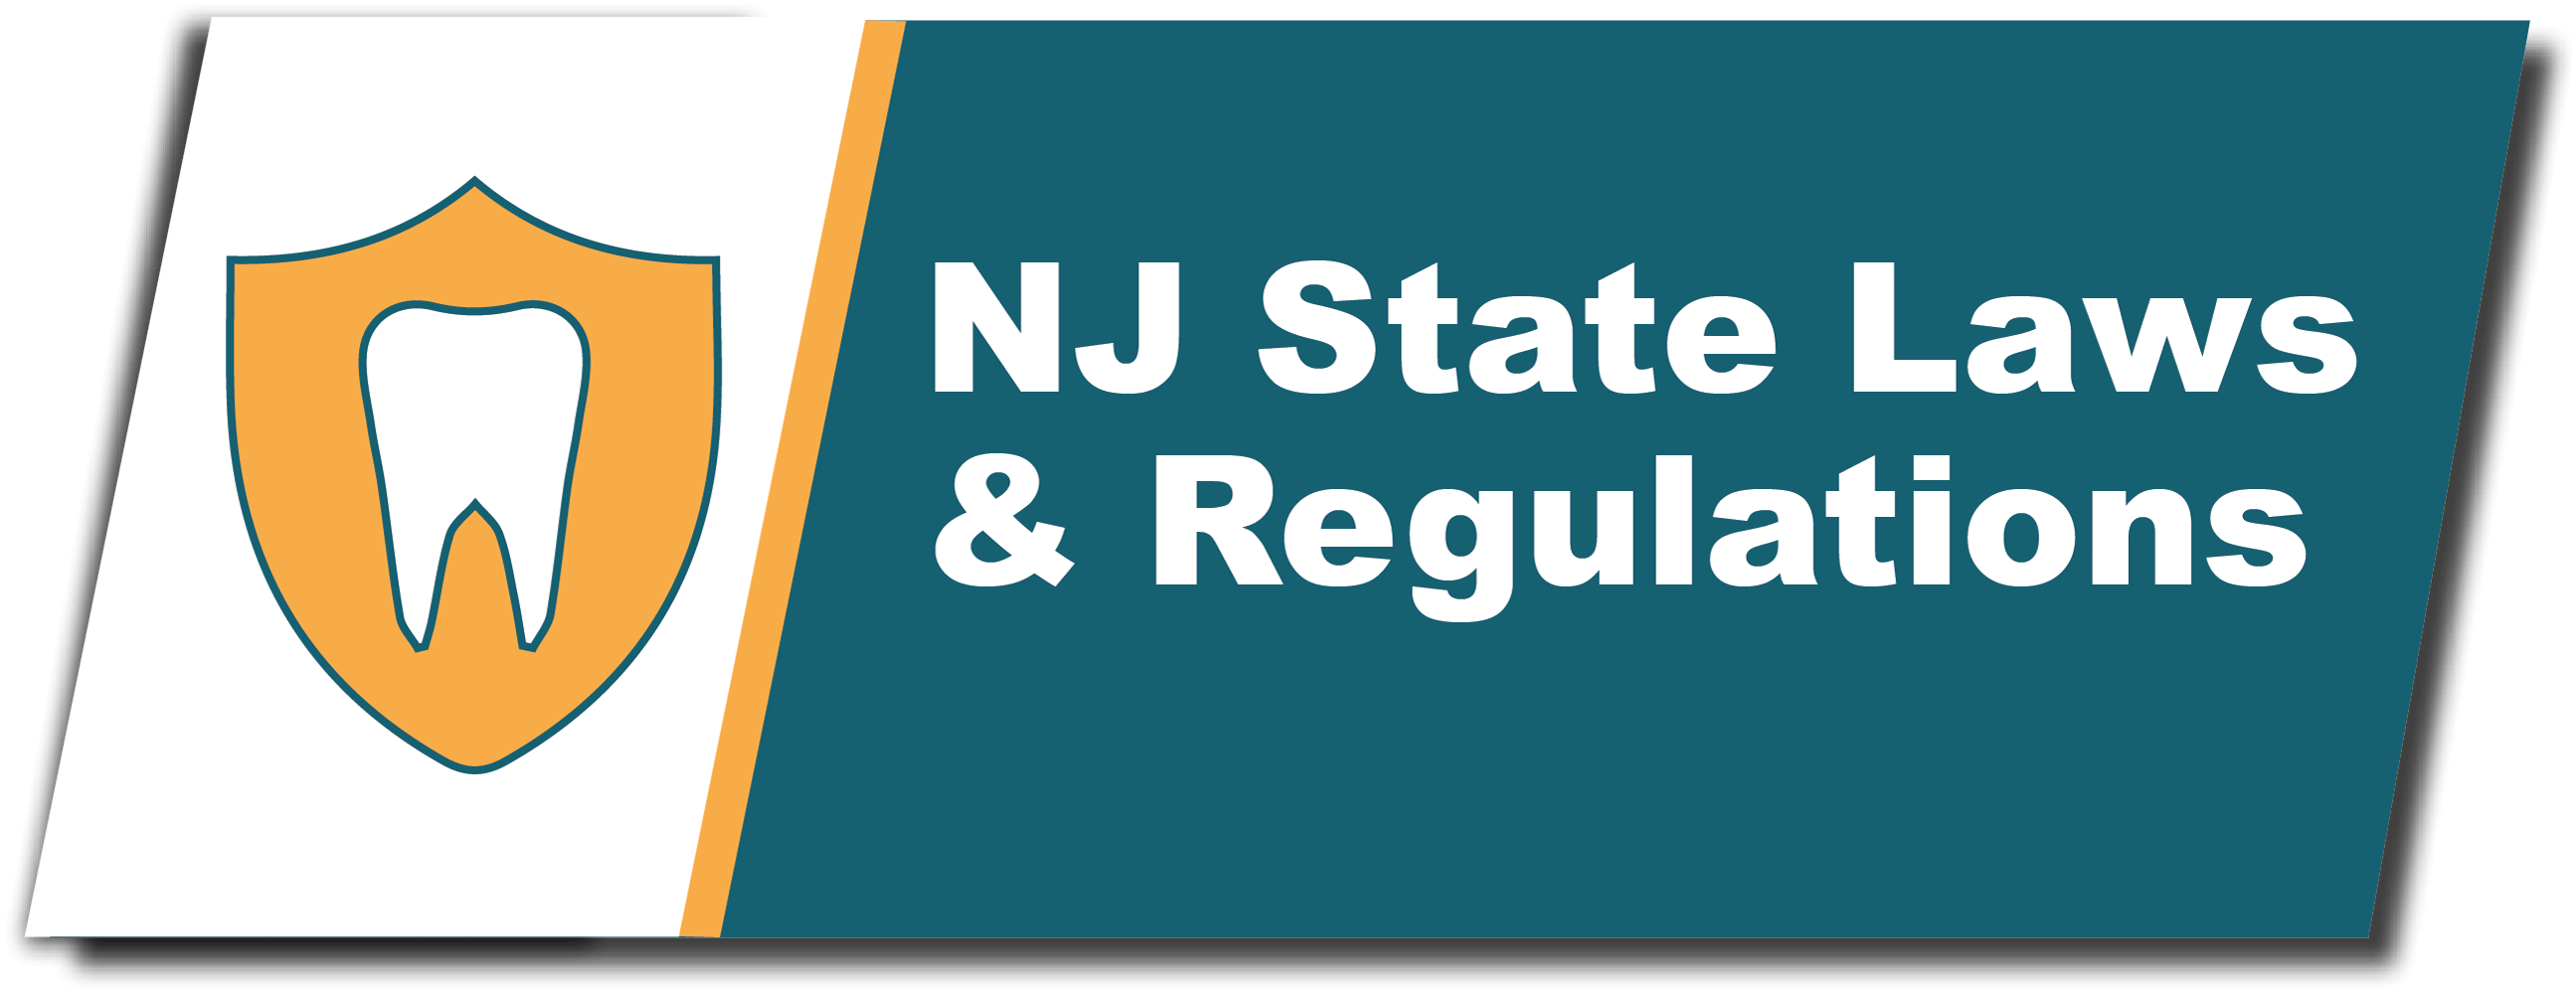 nj state laws and regulations